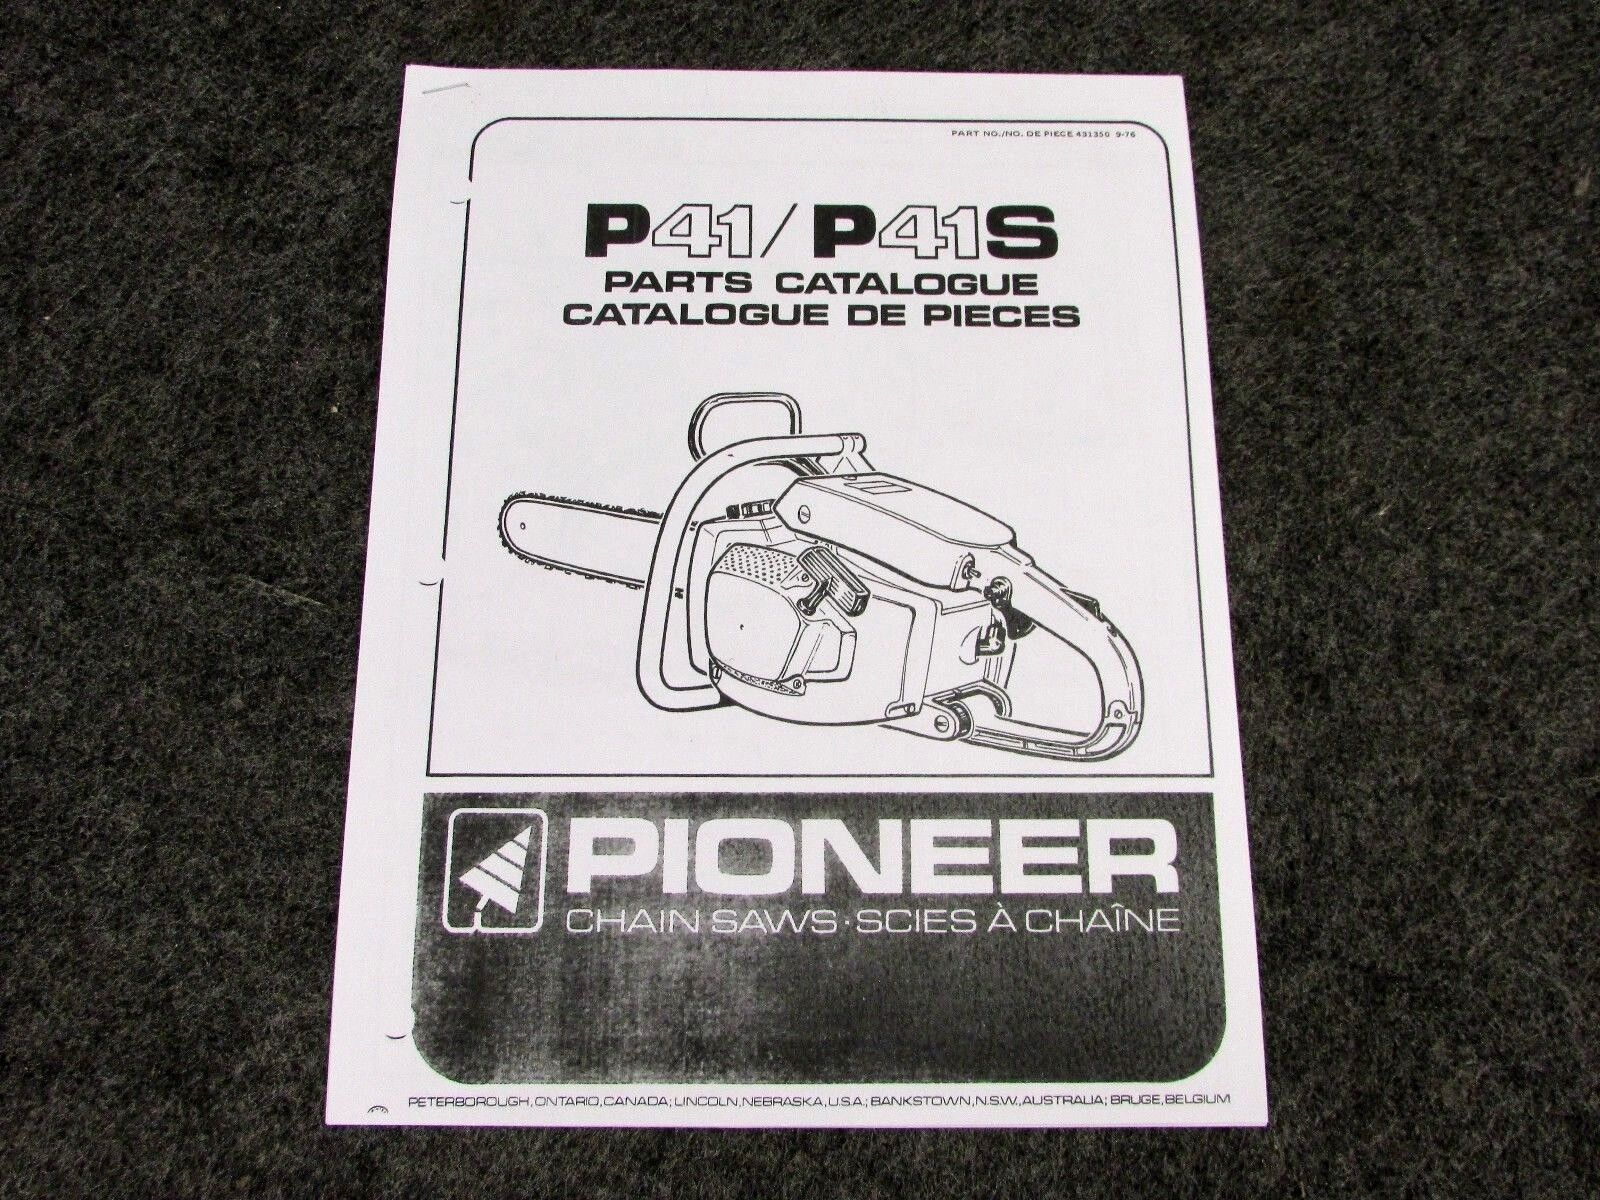 Pioneer Model P41 P41s Chainsaw Parts Manual Chain Saw 431350 9 76 Lincoln Diagrams 1 Of 5only 3 Available